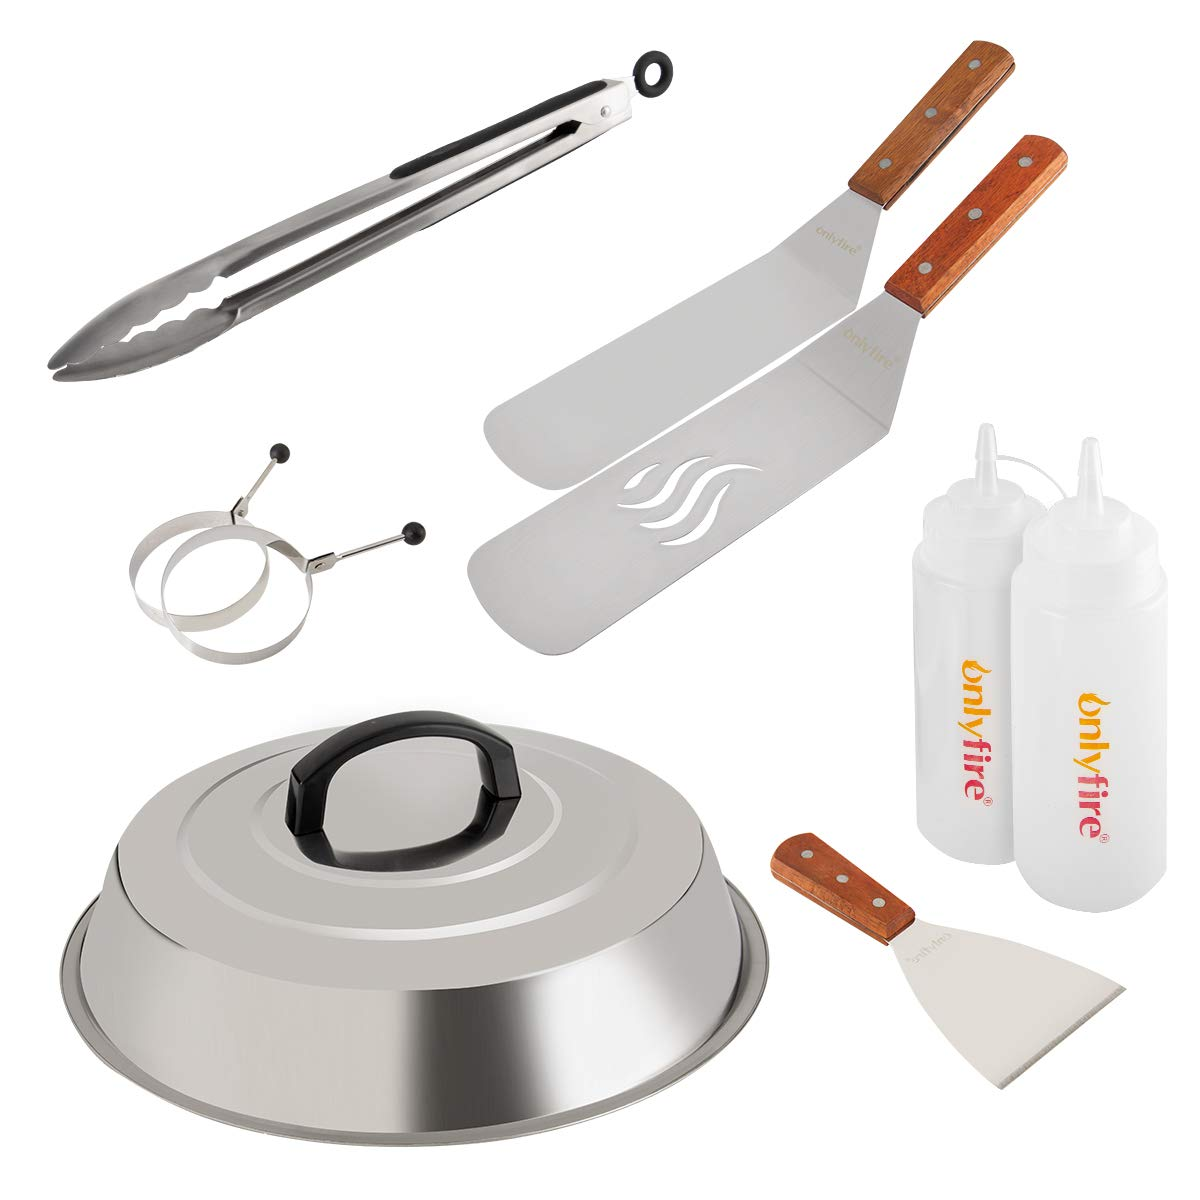 Onlyfire Professional BBQ Griddle Tool Kit Great for Grill Griddle Flat Top Cooking Camping, with One 12'' Melting Dome, 9 pcs